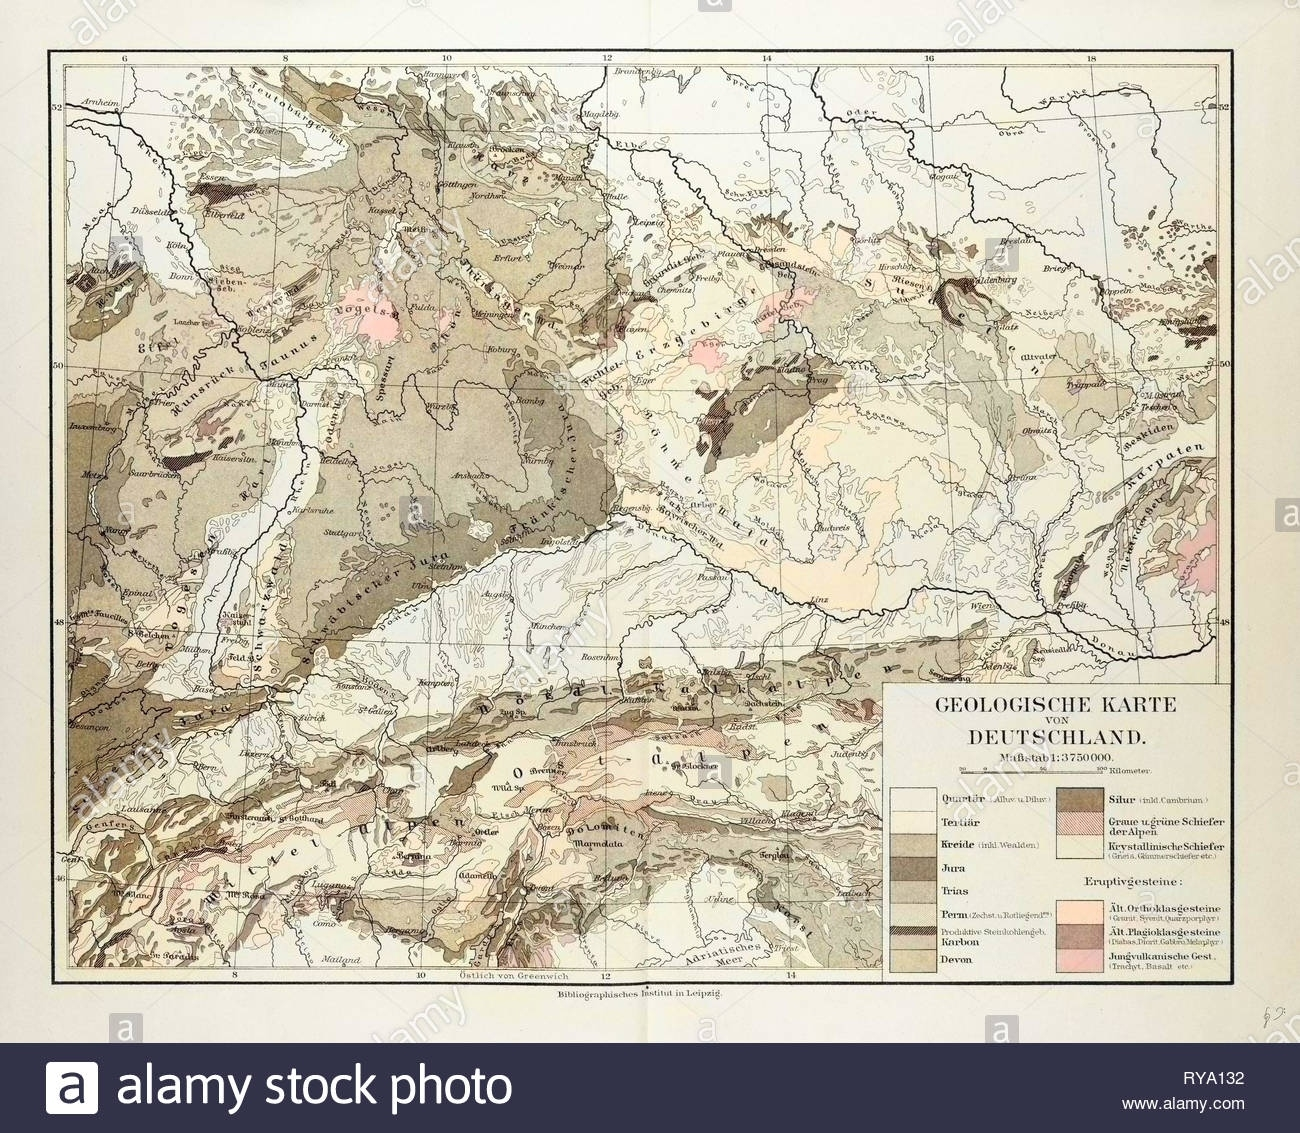 Geological Map Of Germany 1899 Stock Photo: 240550886 - Alamy throughout Geological Map Of Germany